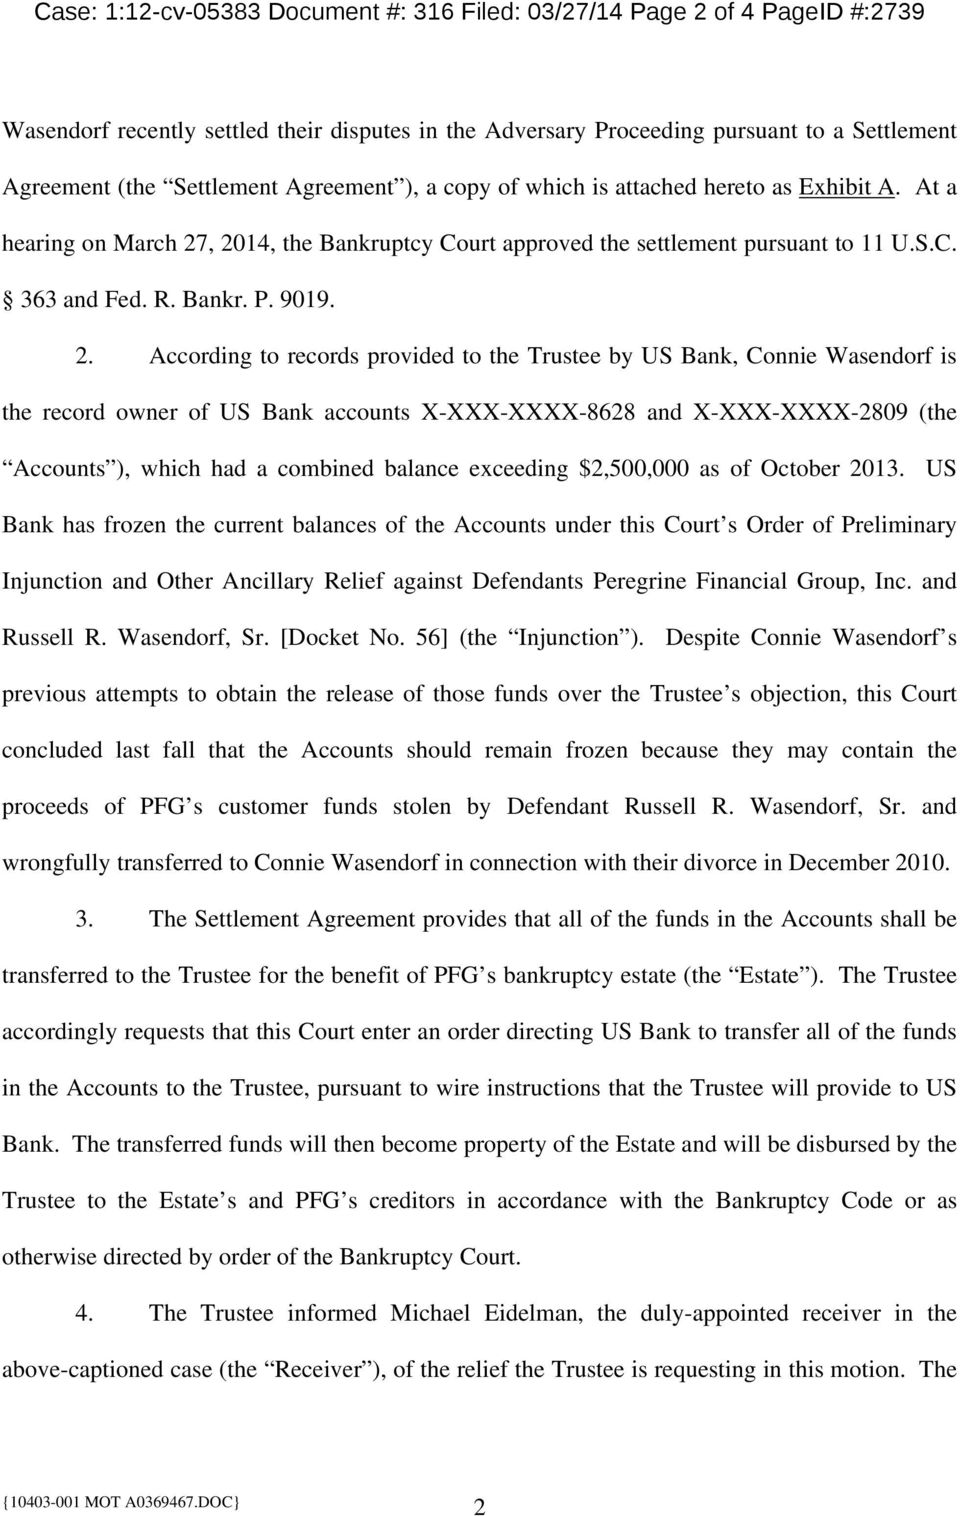 , 2014, the Bankruptcy Court approved the settlement pursuant to 11 U.S.C. 363 and Fed. R. Bankr. P. 9019. 2. According to records provided to the Trustee by US Bank, Connie Wasendorf is the record